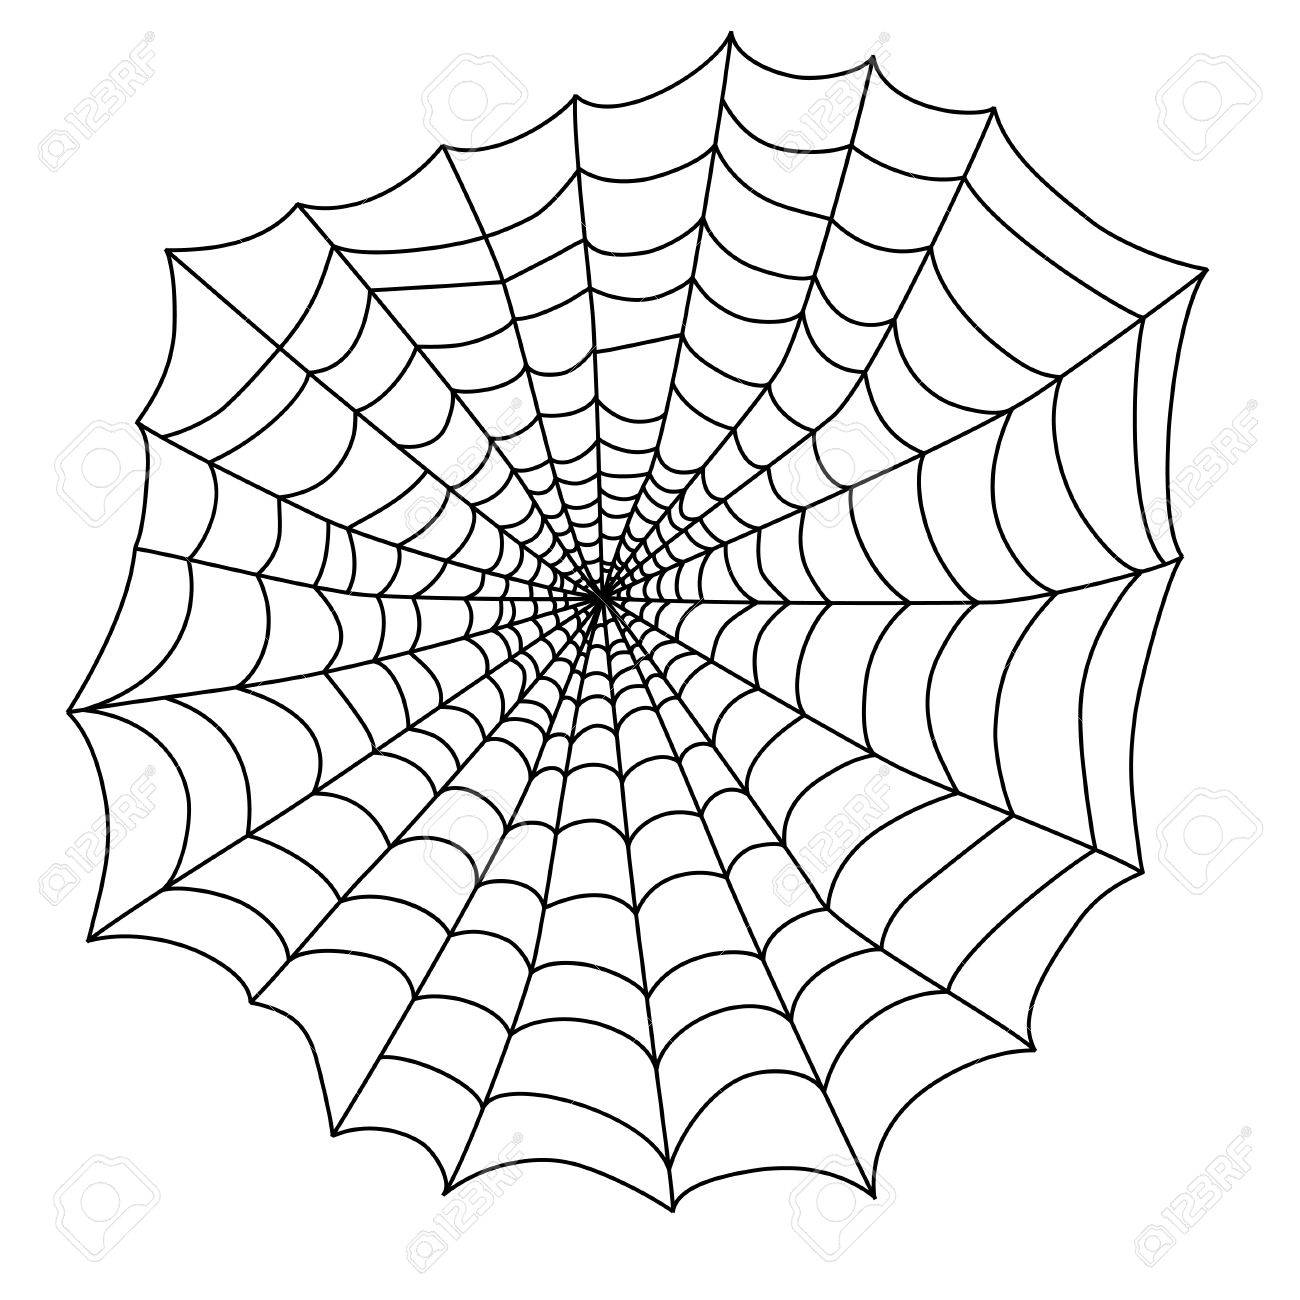 Halloween Vector Black And White.Black Spider Web On An White Background For The Holiday Halloween